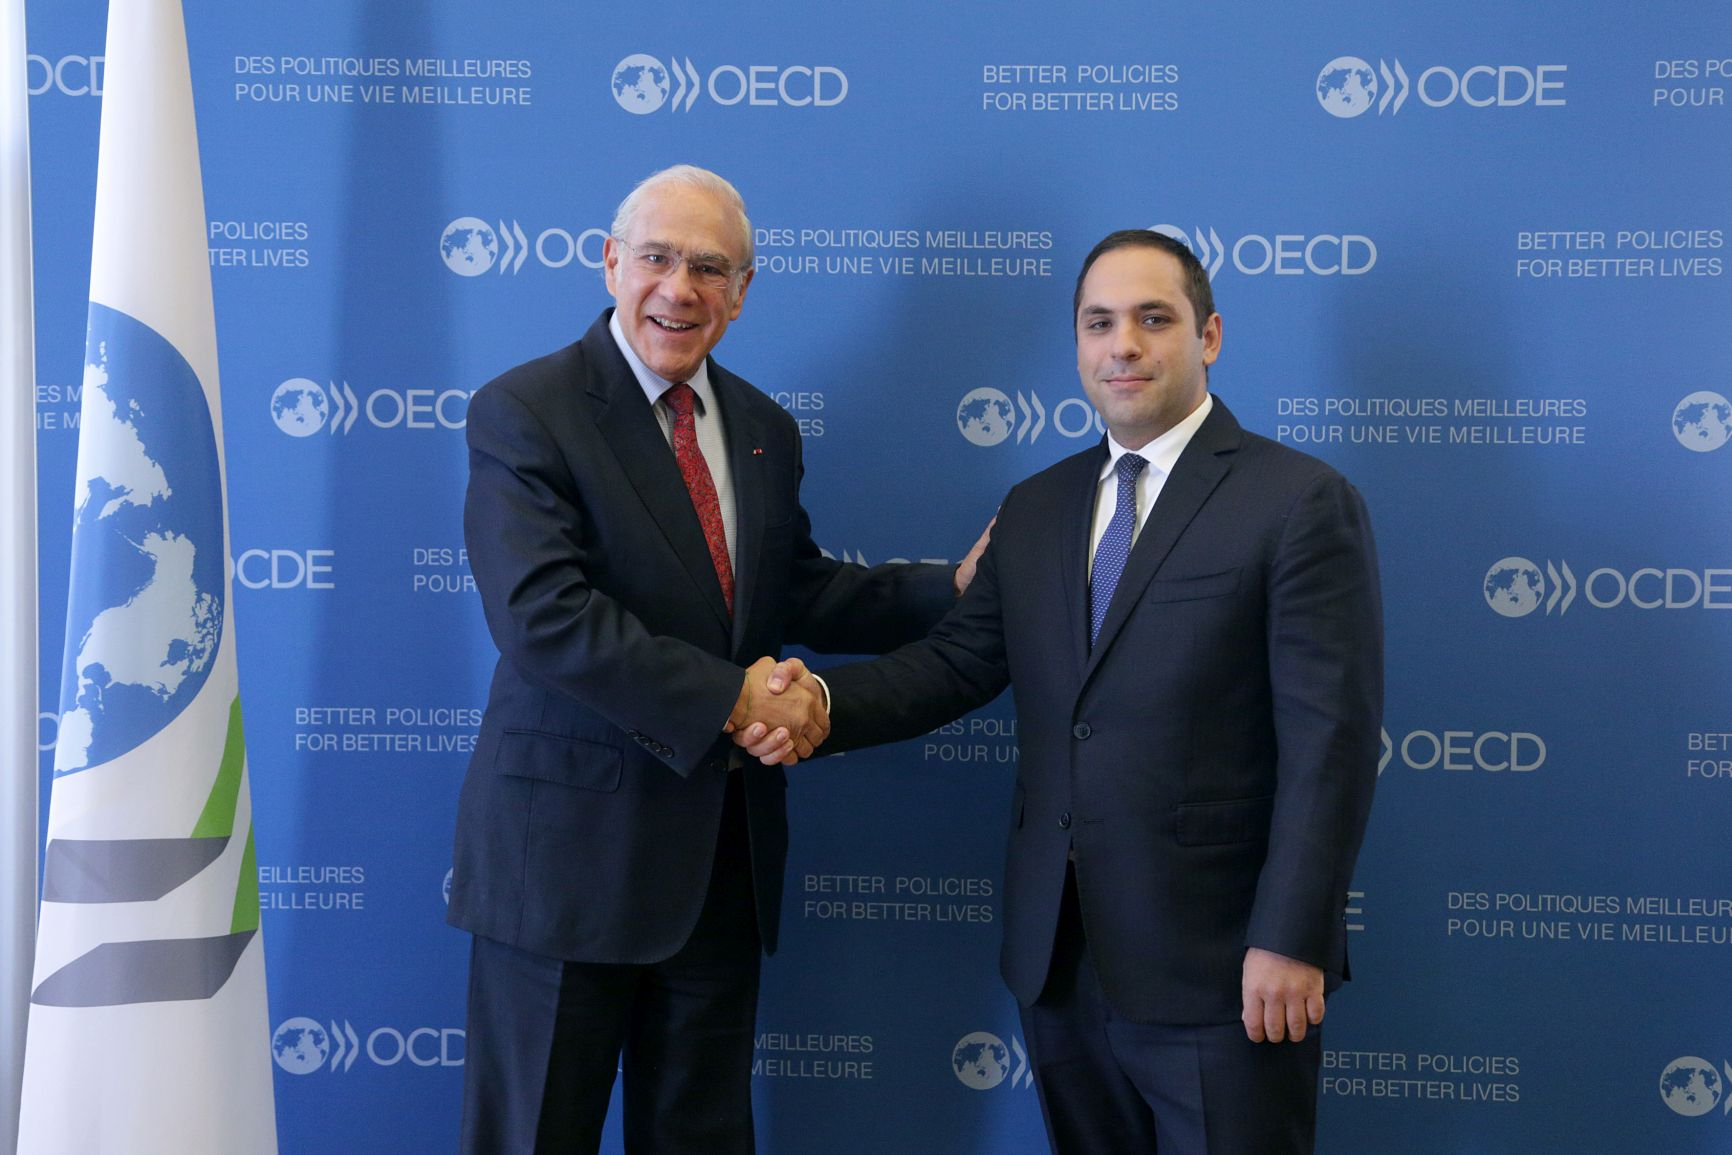 Minister Emil Karanikolov presented Bulgaria's OECD Action Plan to the Council of the Organization